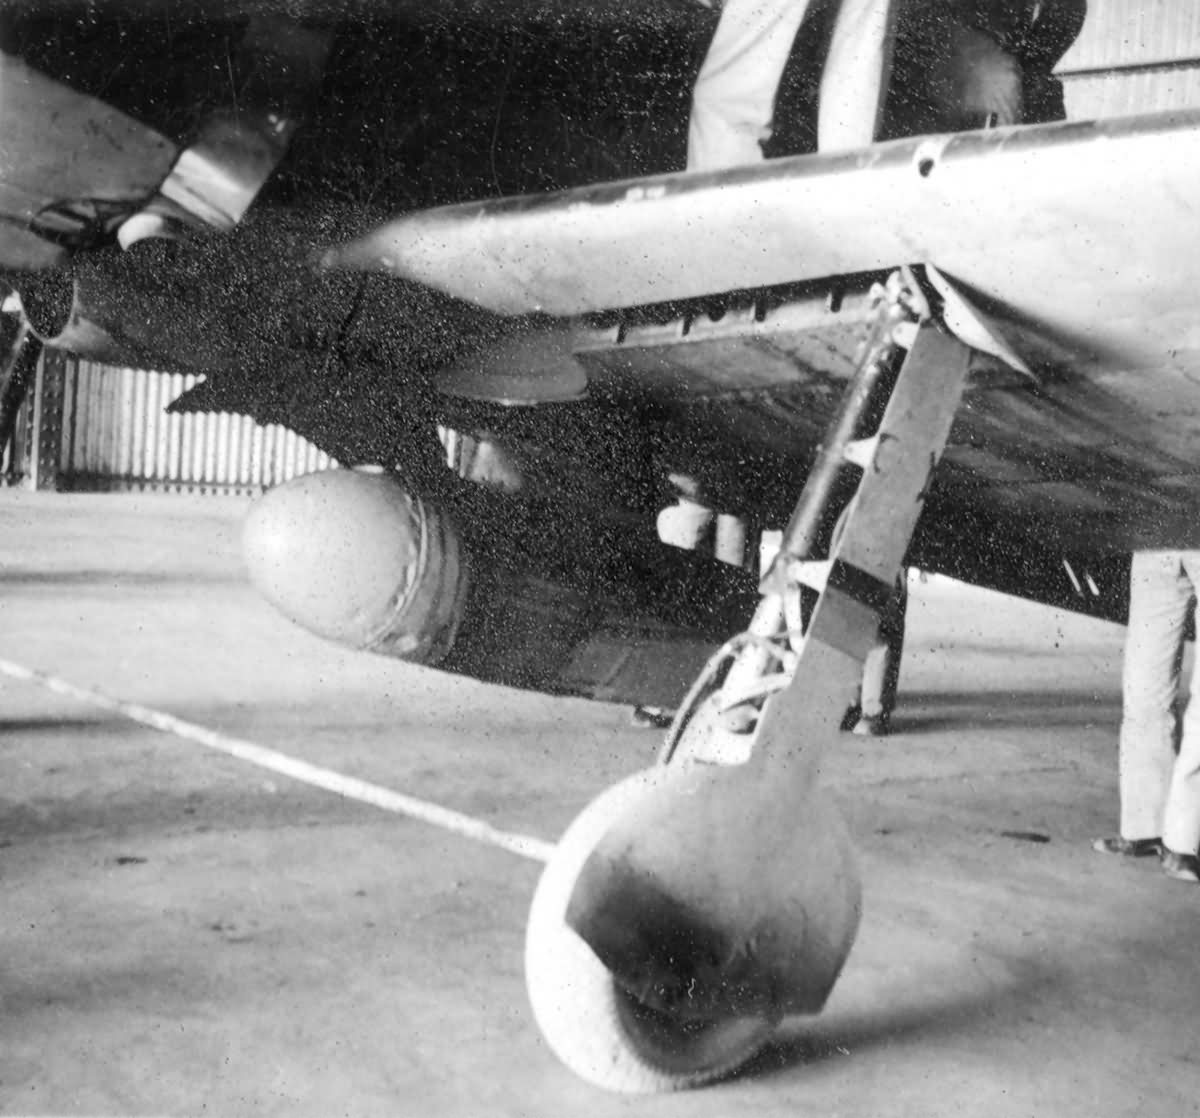 Captured_A6M2_Zero_V-172_landing_gear.jpg